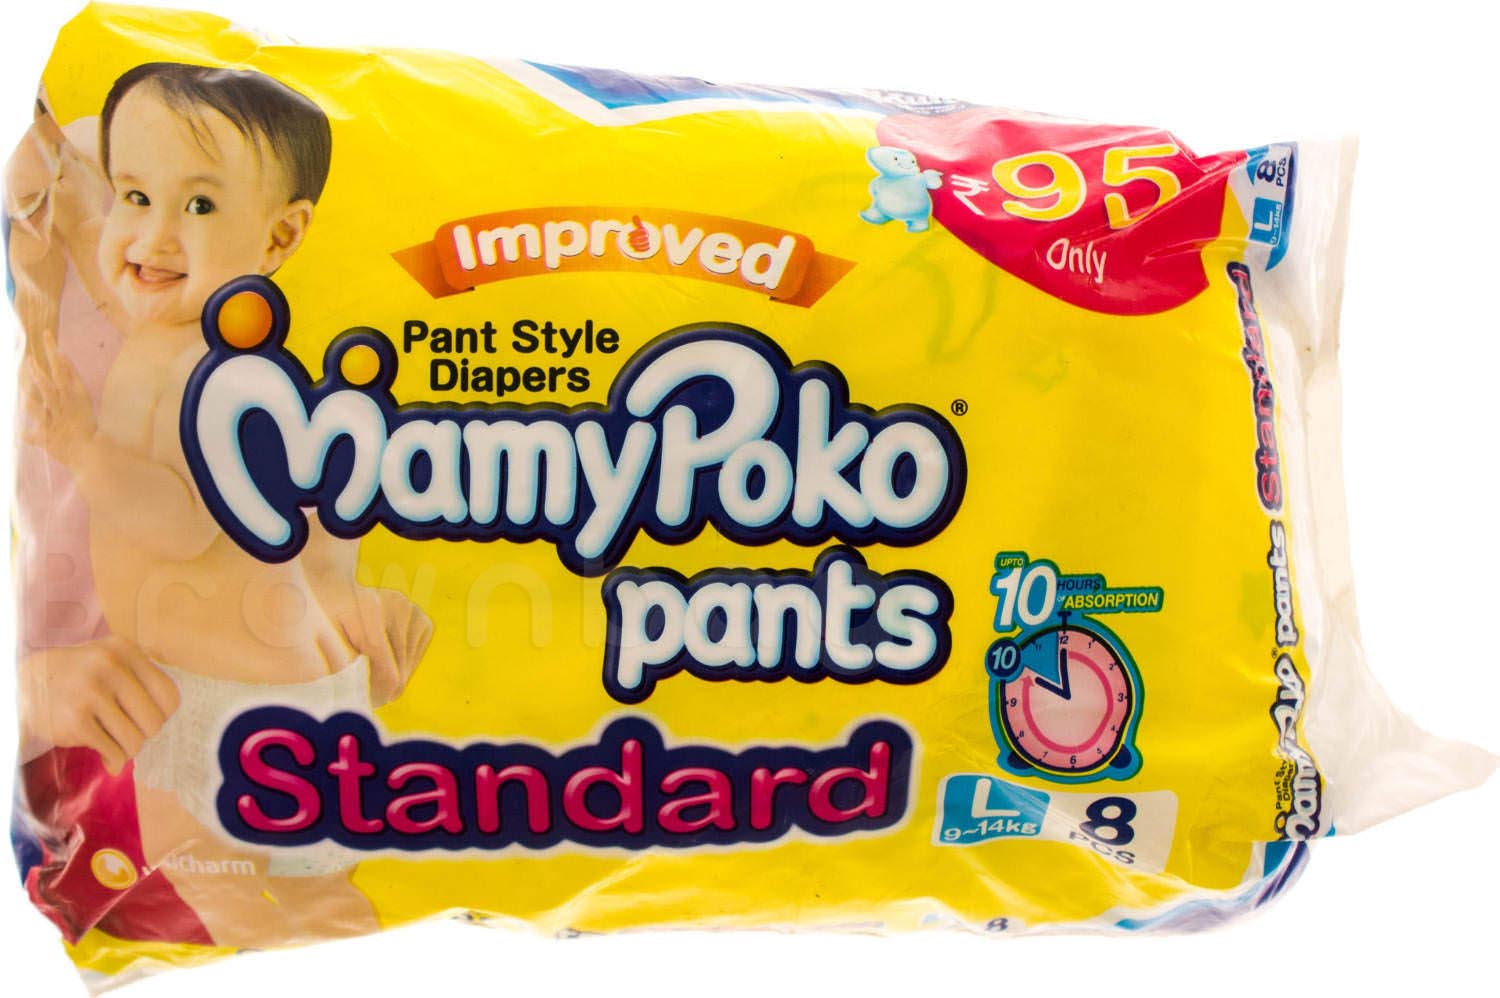 Mamypoko Pants Style Standard Disposable Diapers Large, 9-14kg